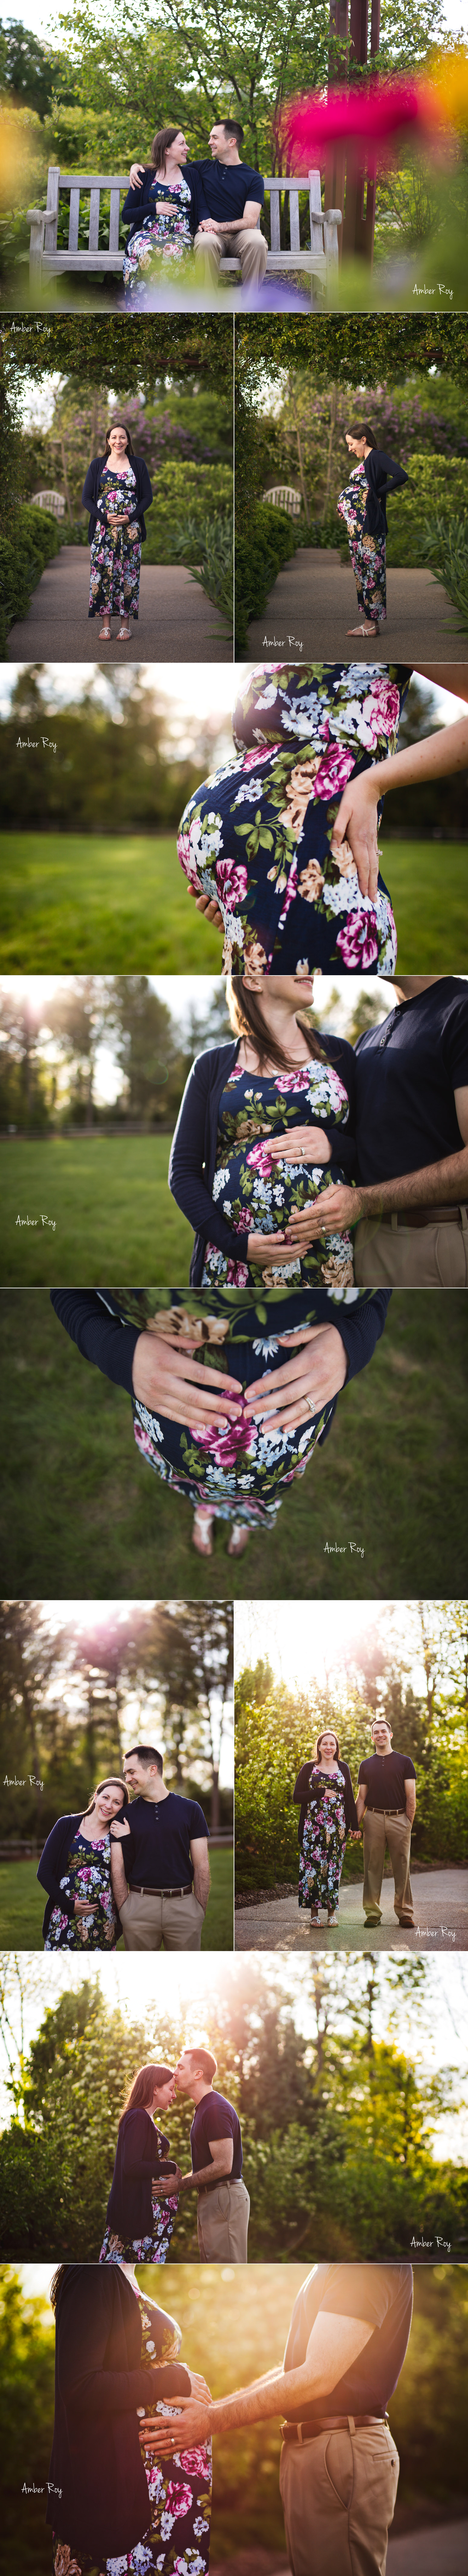 state_college_maternity_photographer_4276